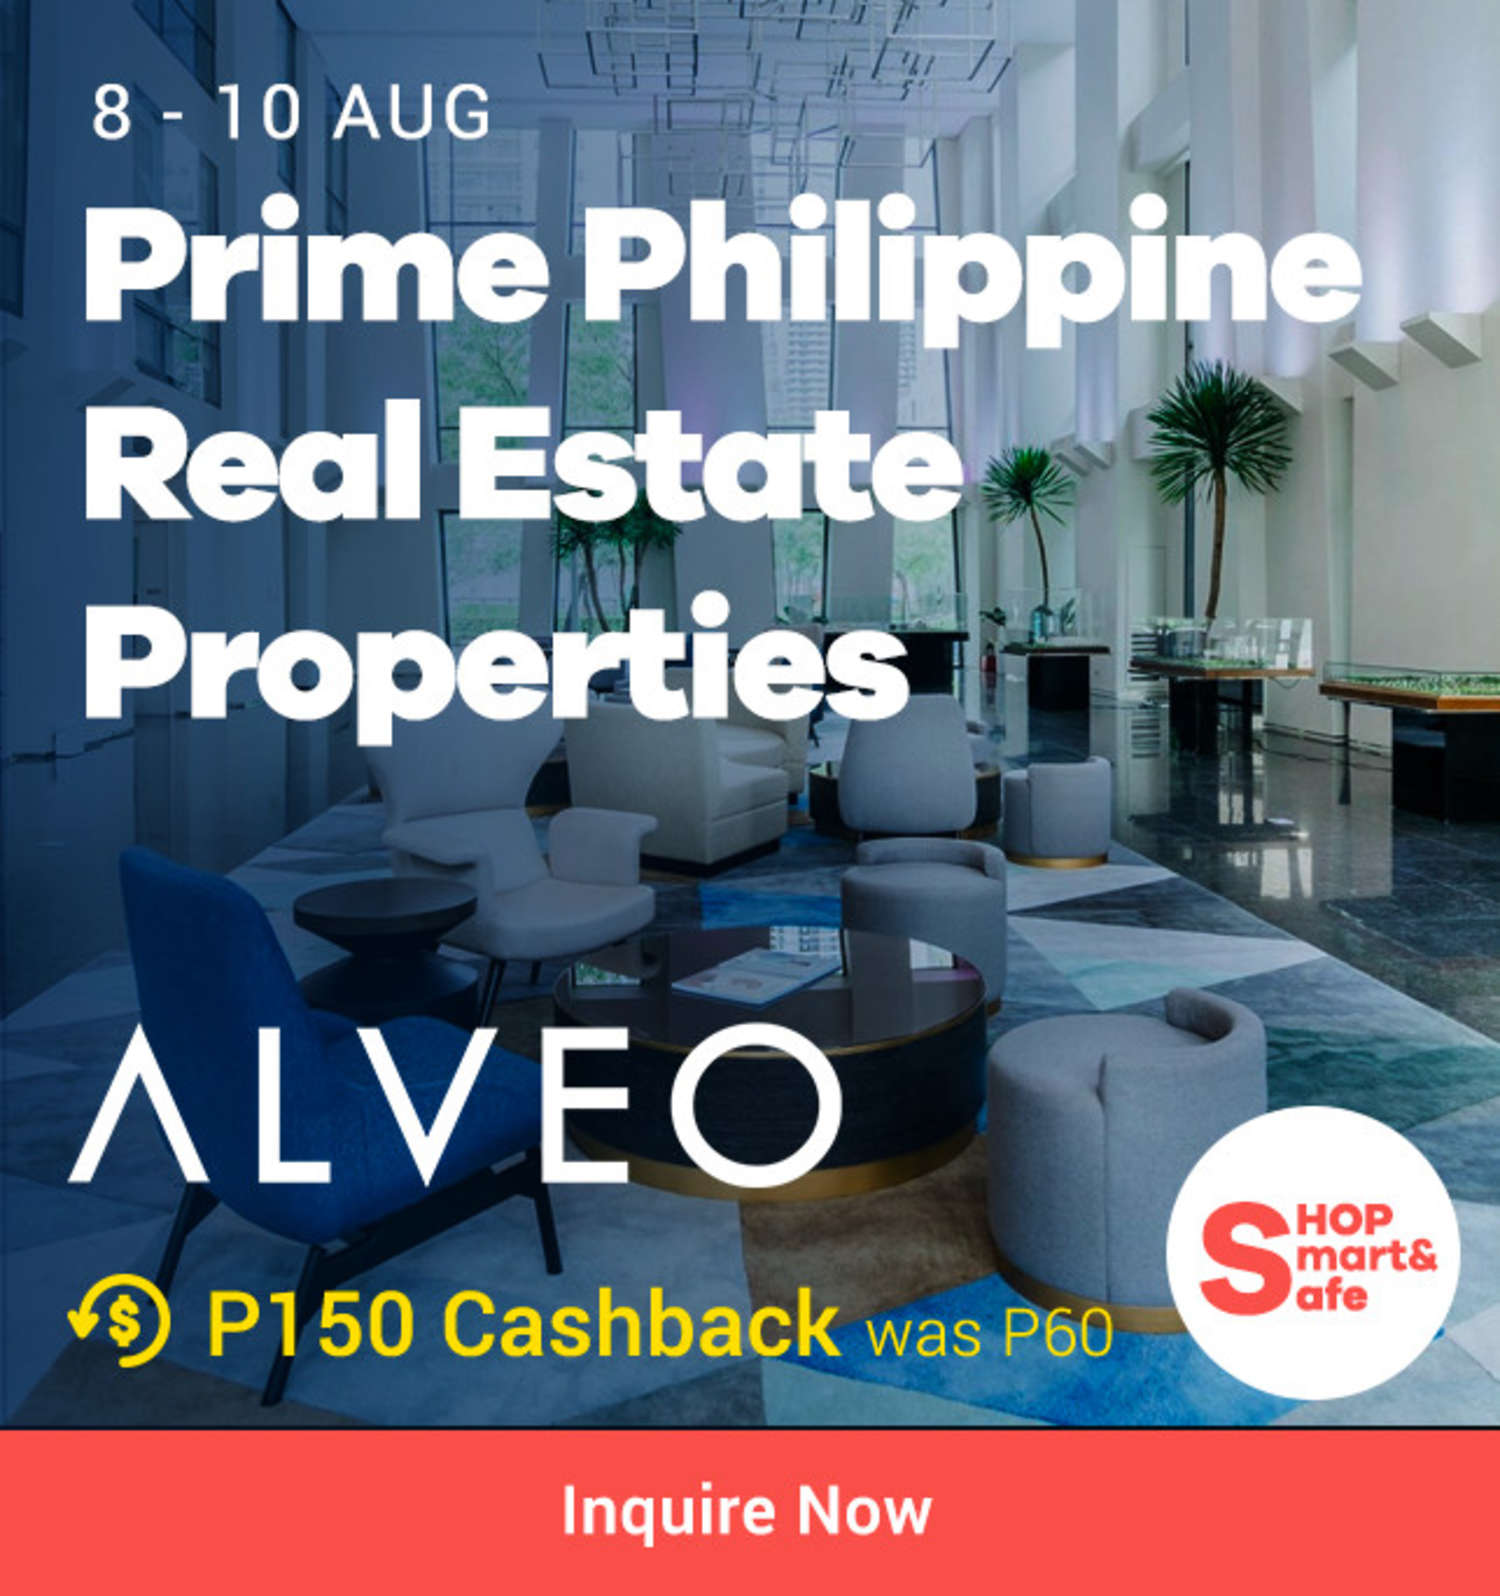 Alveo: Prime Philippine Real Estate Properties